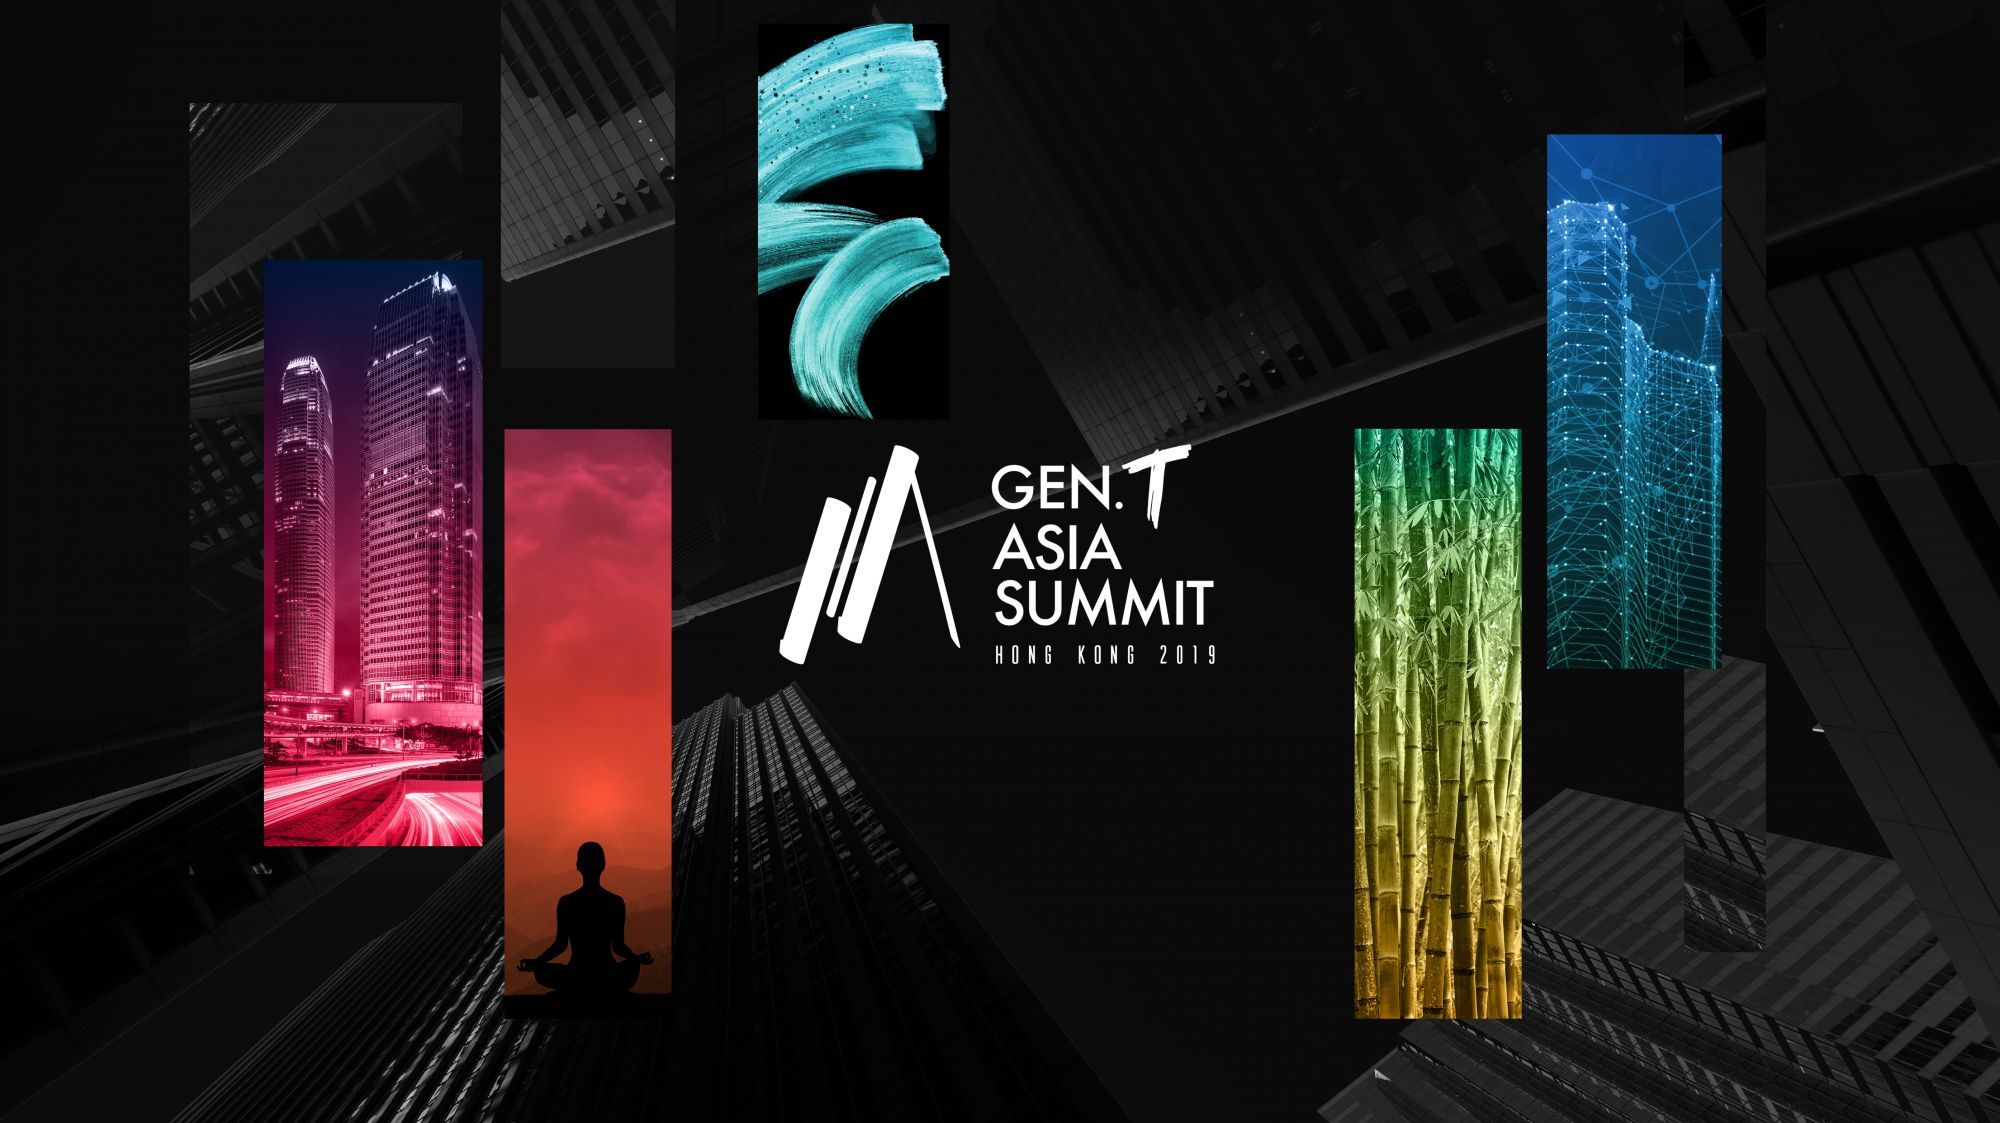 We Have Some Important News About The Gen.T Asia Summit